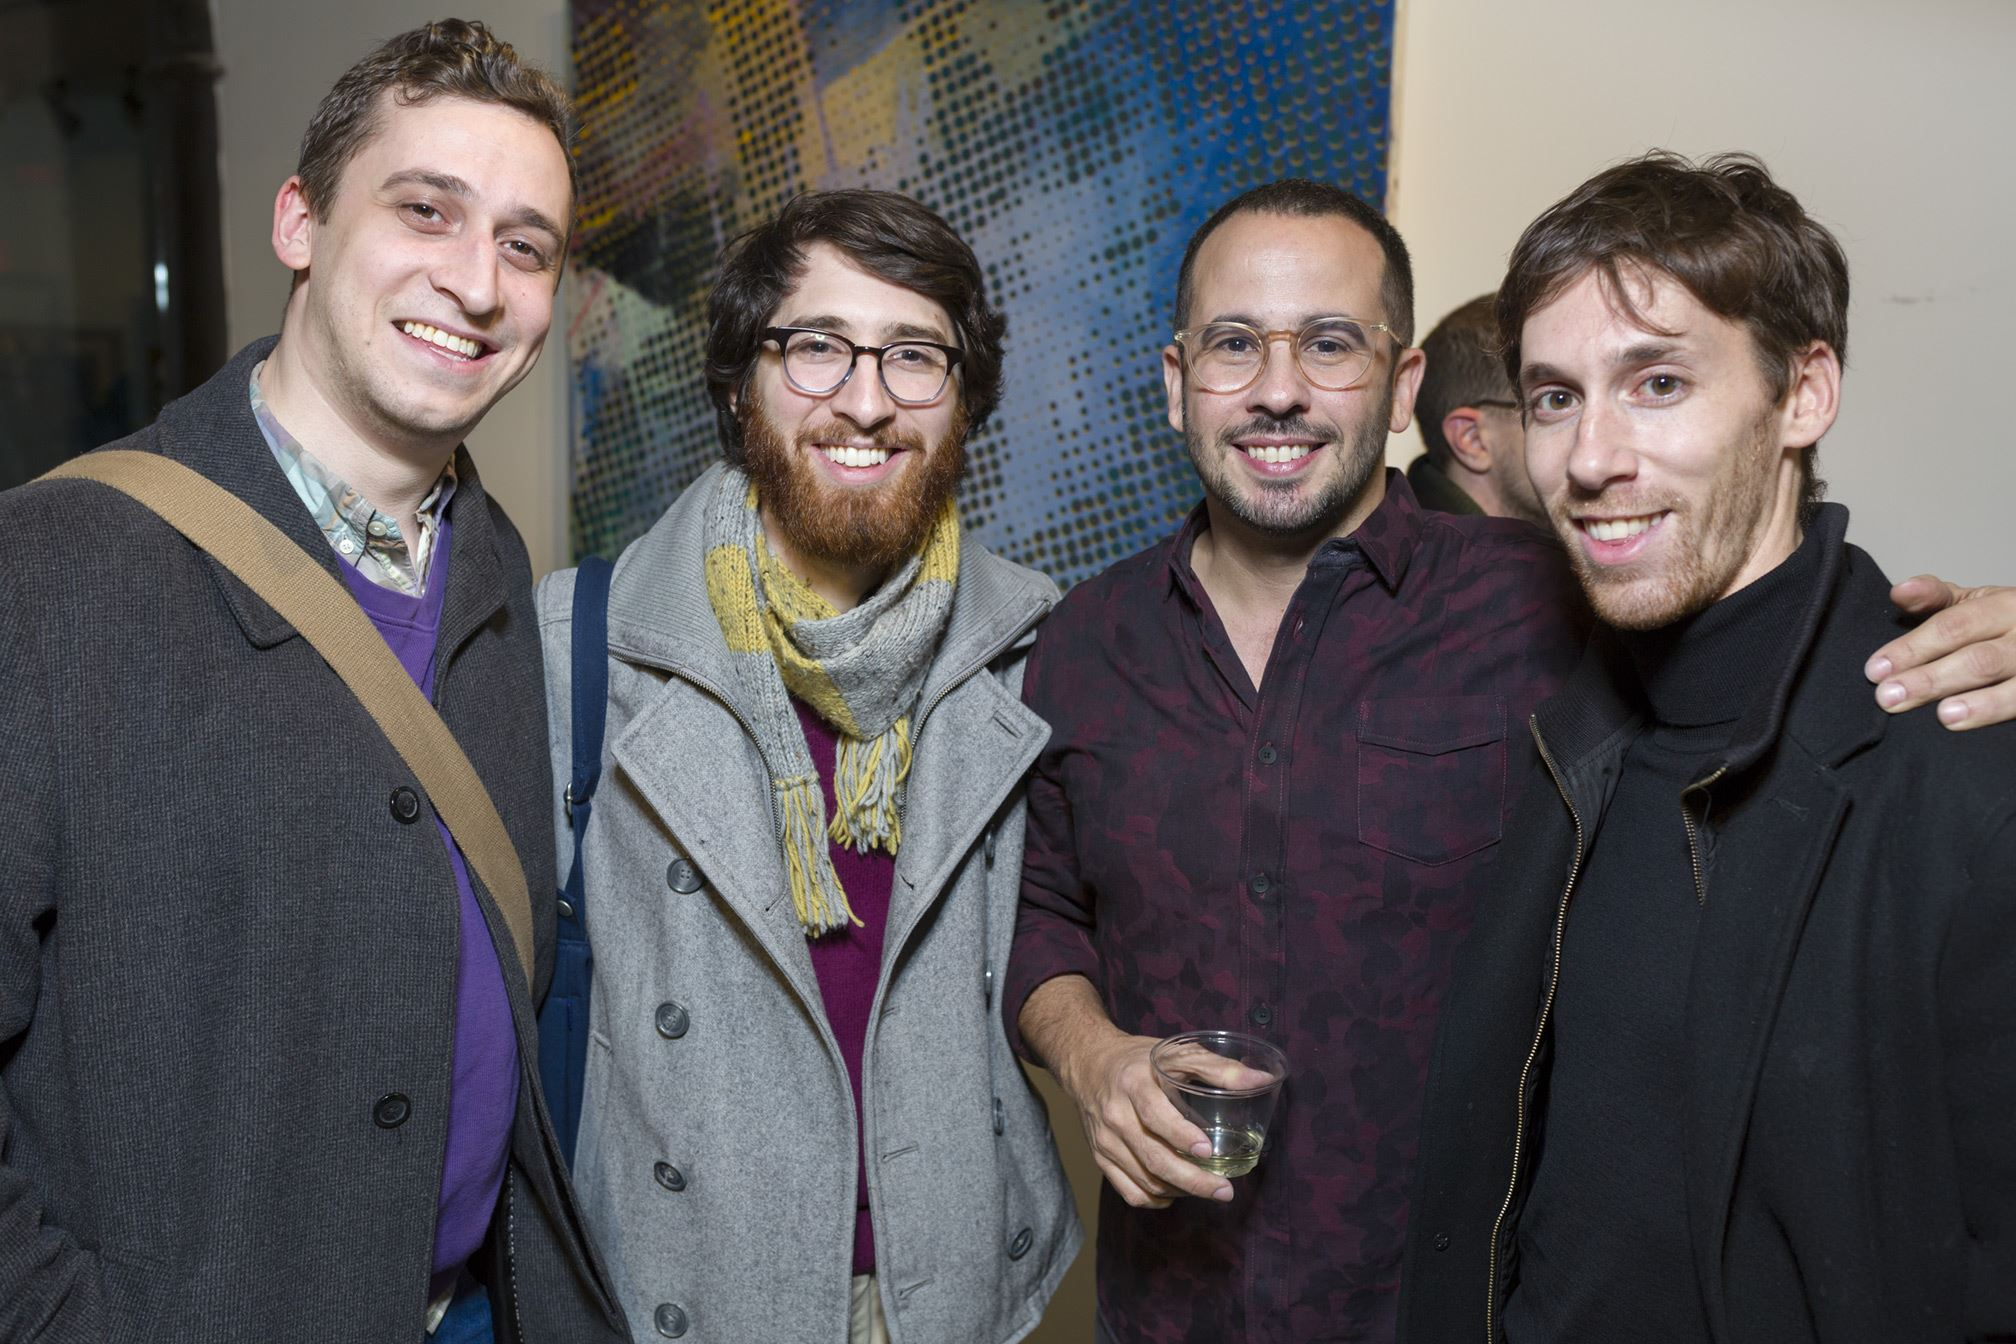 A lively crowd at A R E A opening night, including Gallery Director, David Guerra (2nd from right), image courtesy of  A R E A Gallery Facebook